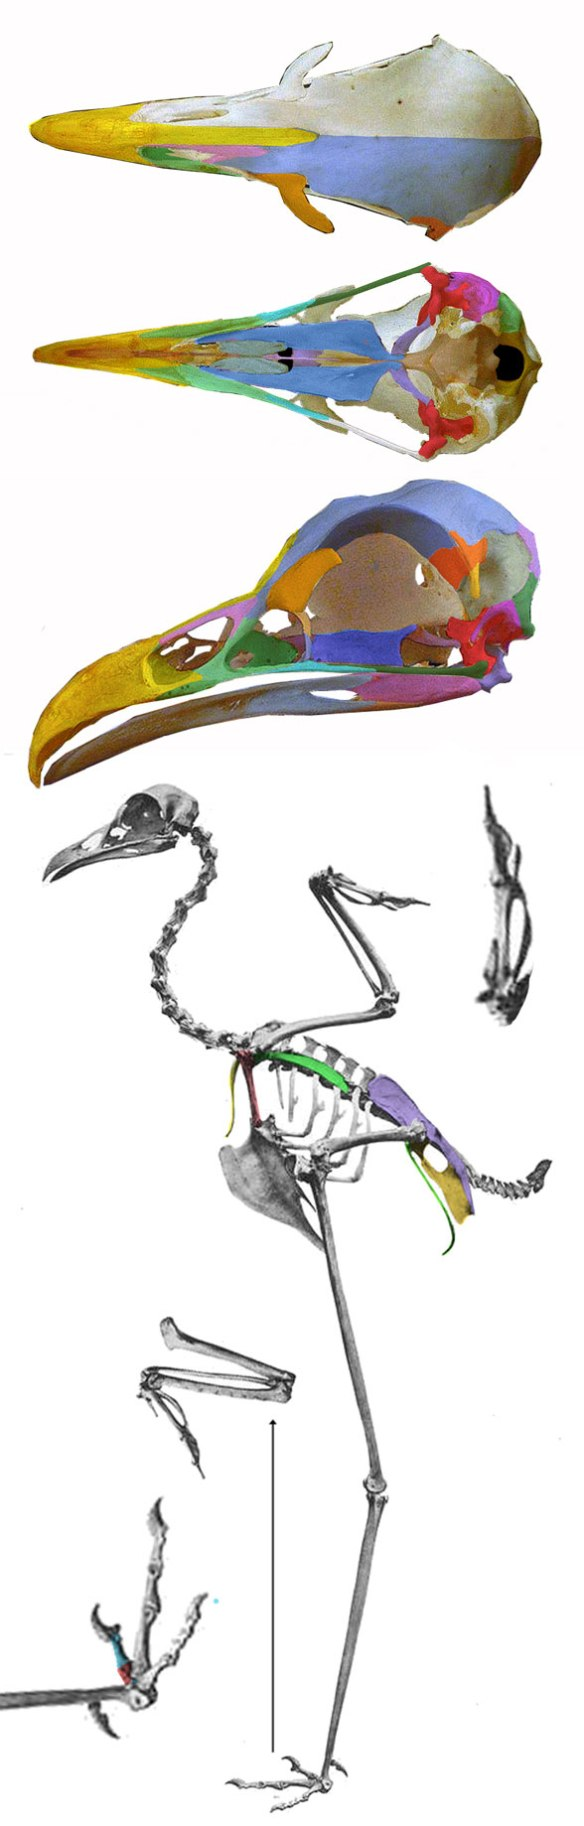 Figure 2. The seriema(genus: Cariama) is the closest taxa to Yanornis in the LRT. The two resemble one another in most details, but Cariama lacks teeth, has a retracted naris and an elevated pedal digit 1.